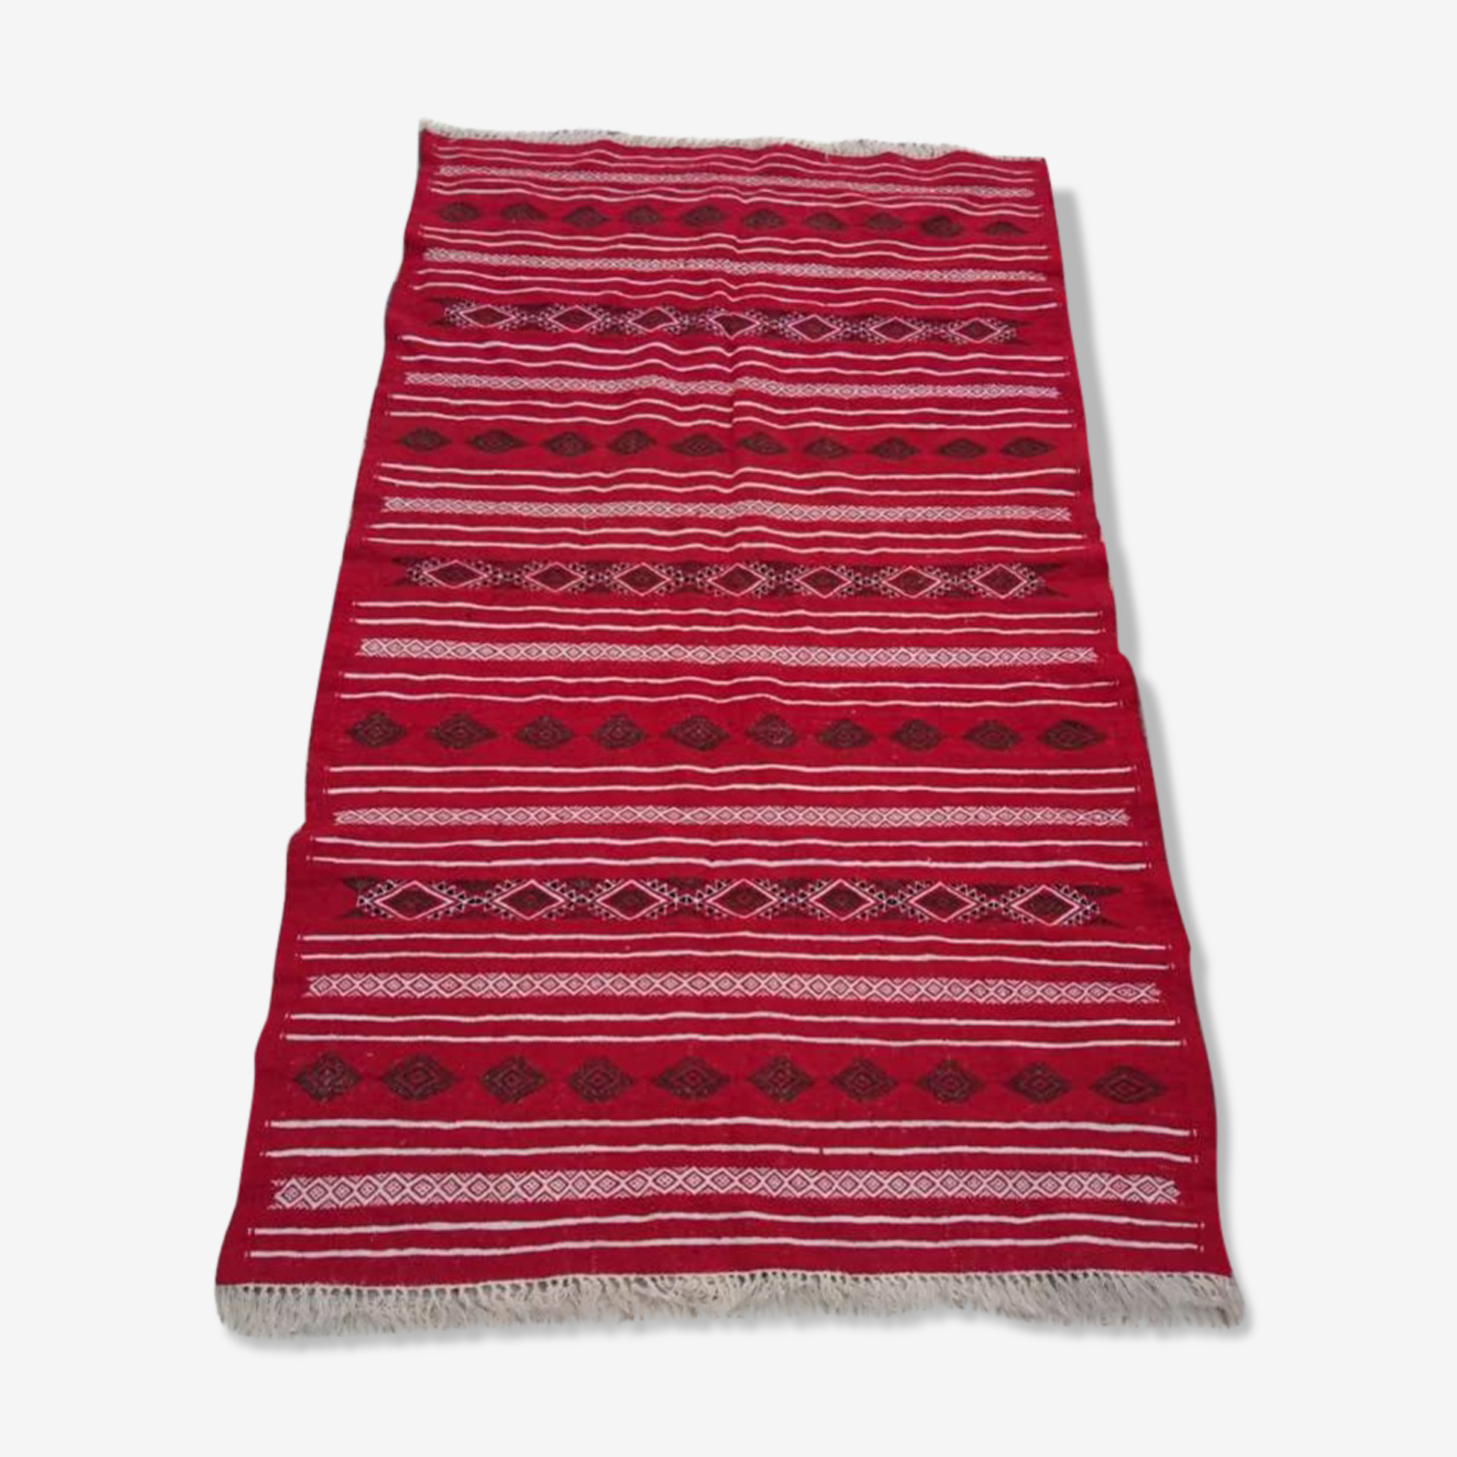 Handmade red berber carpet 240x140cm